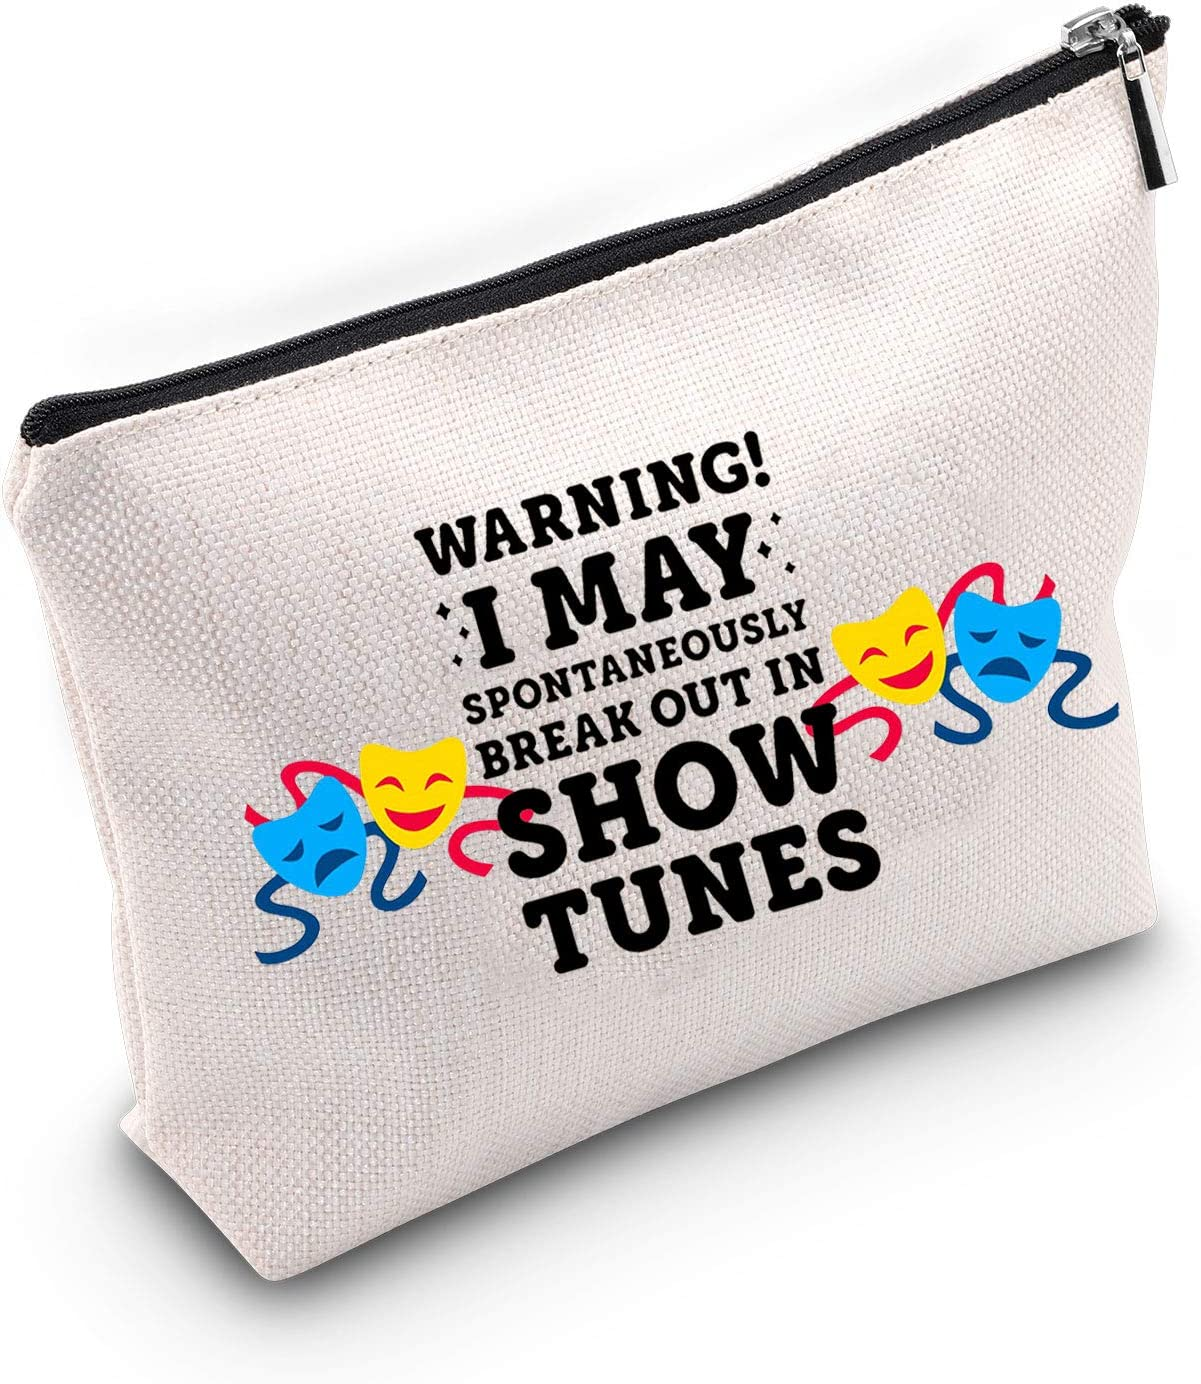 TSOTMO Warning I May Randomoly Break Out In Show Tunes Cosmetic Bag Theatre Novelty Makeup Bag Broadway Musical Theater Gift (SHOW TUNES)